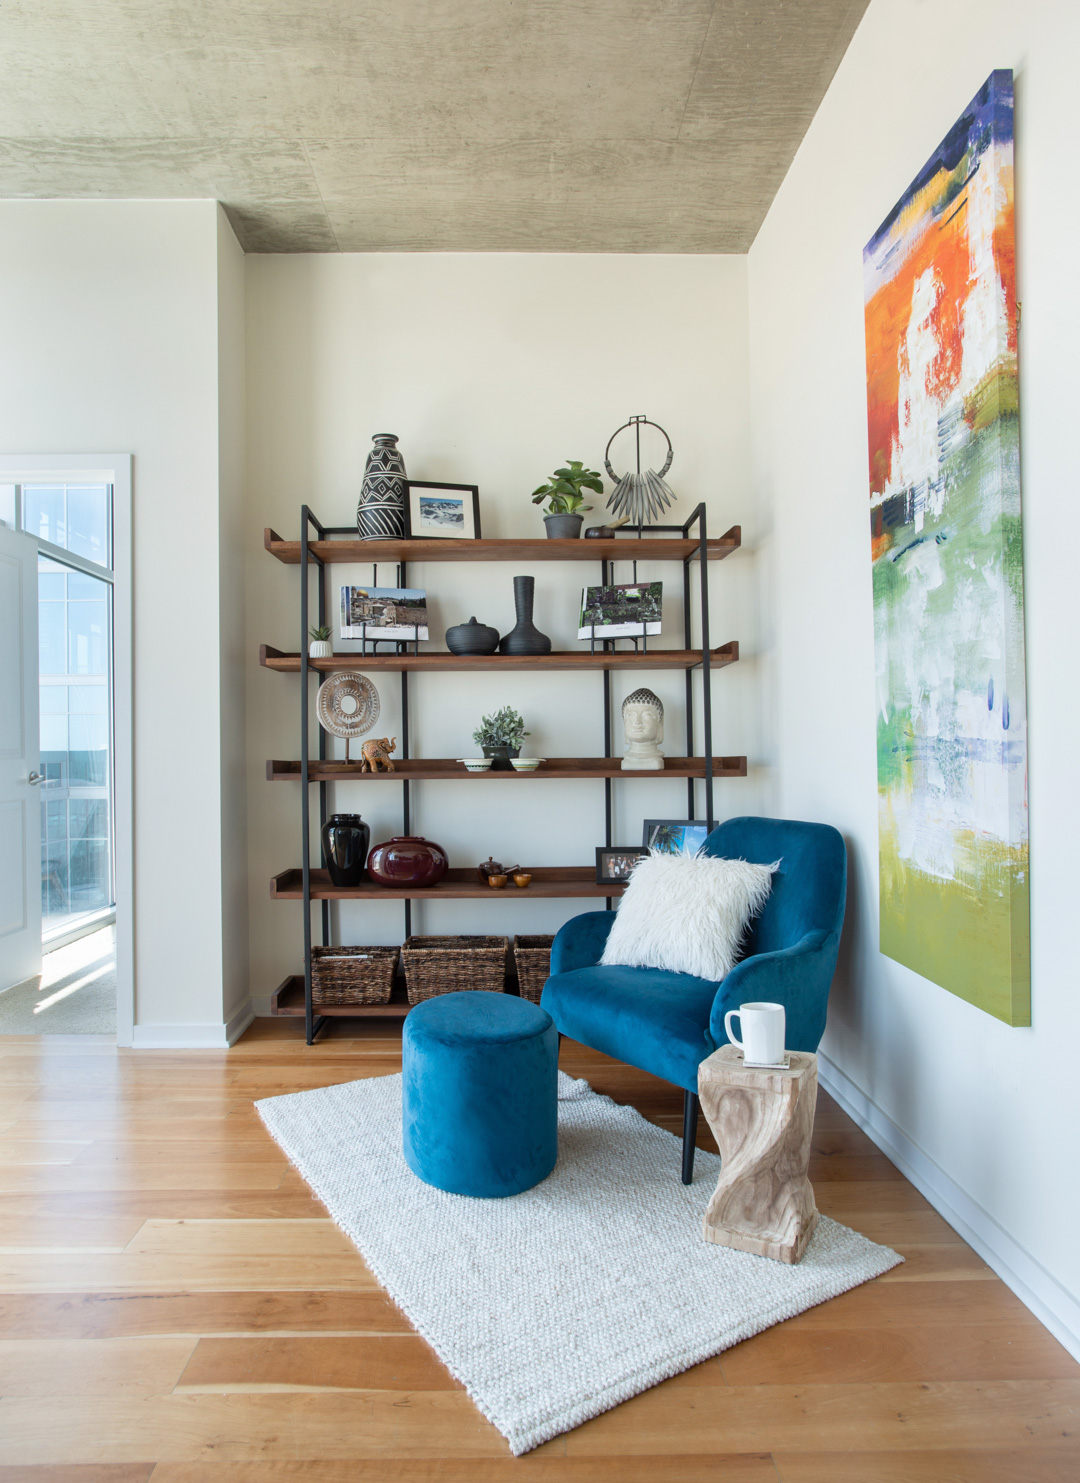 glass house reading nook with blue chair and wooden stool with coffee